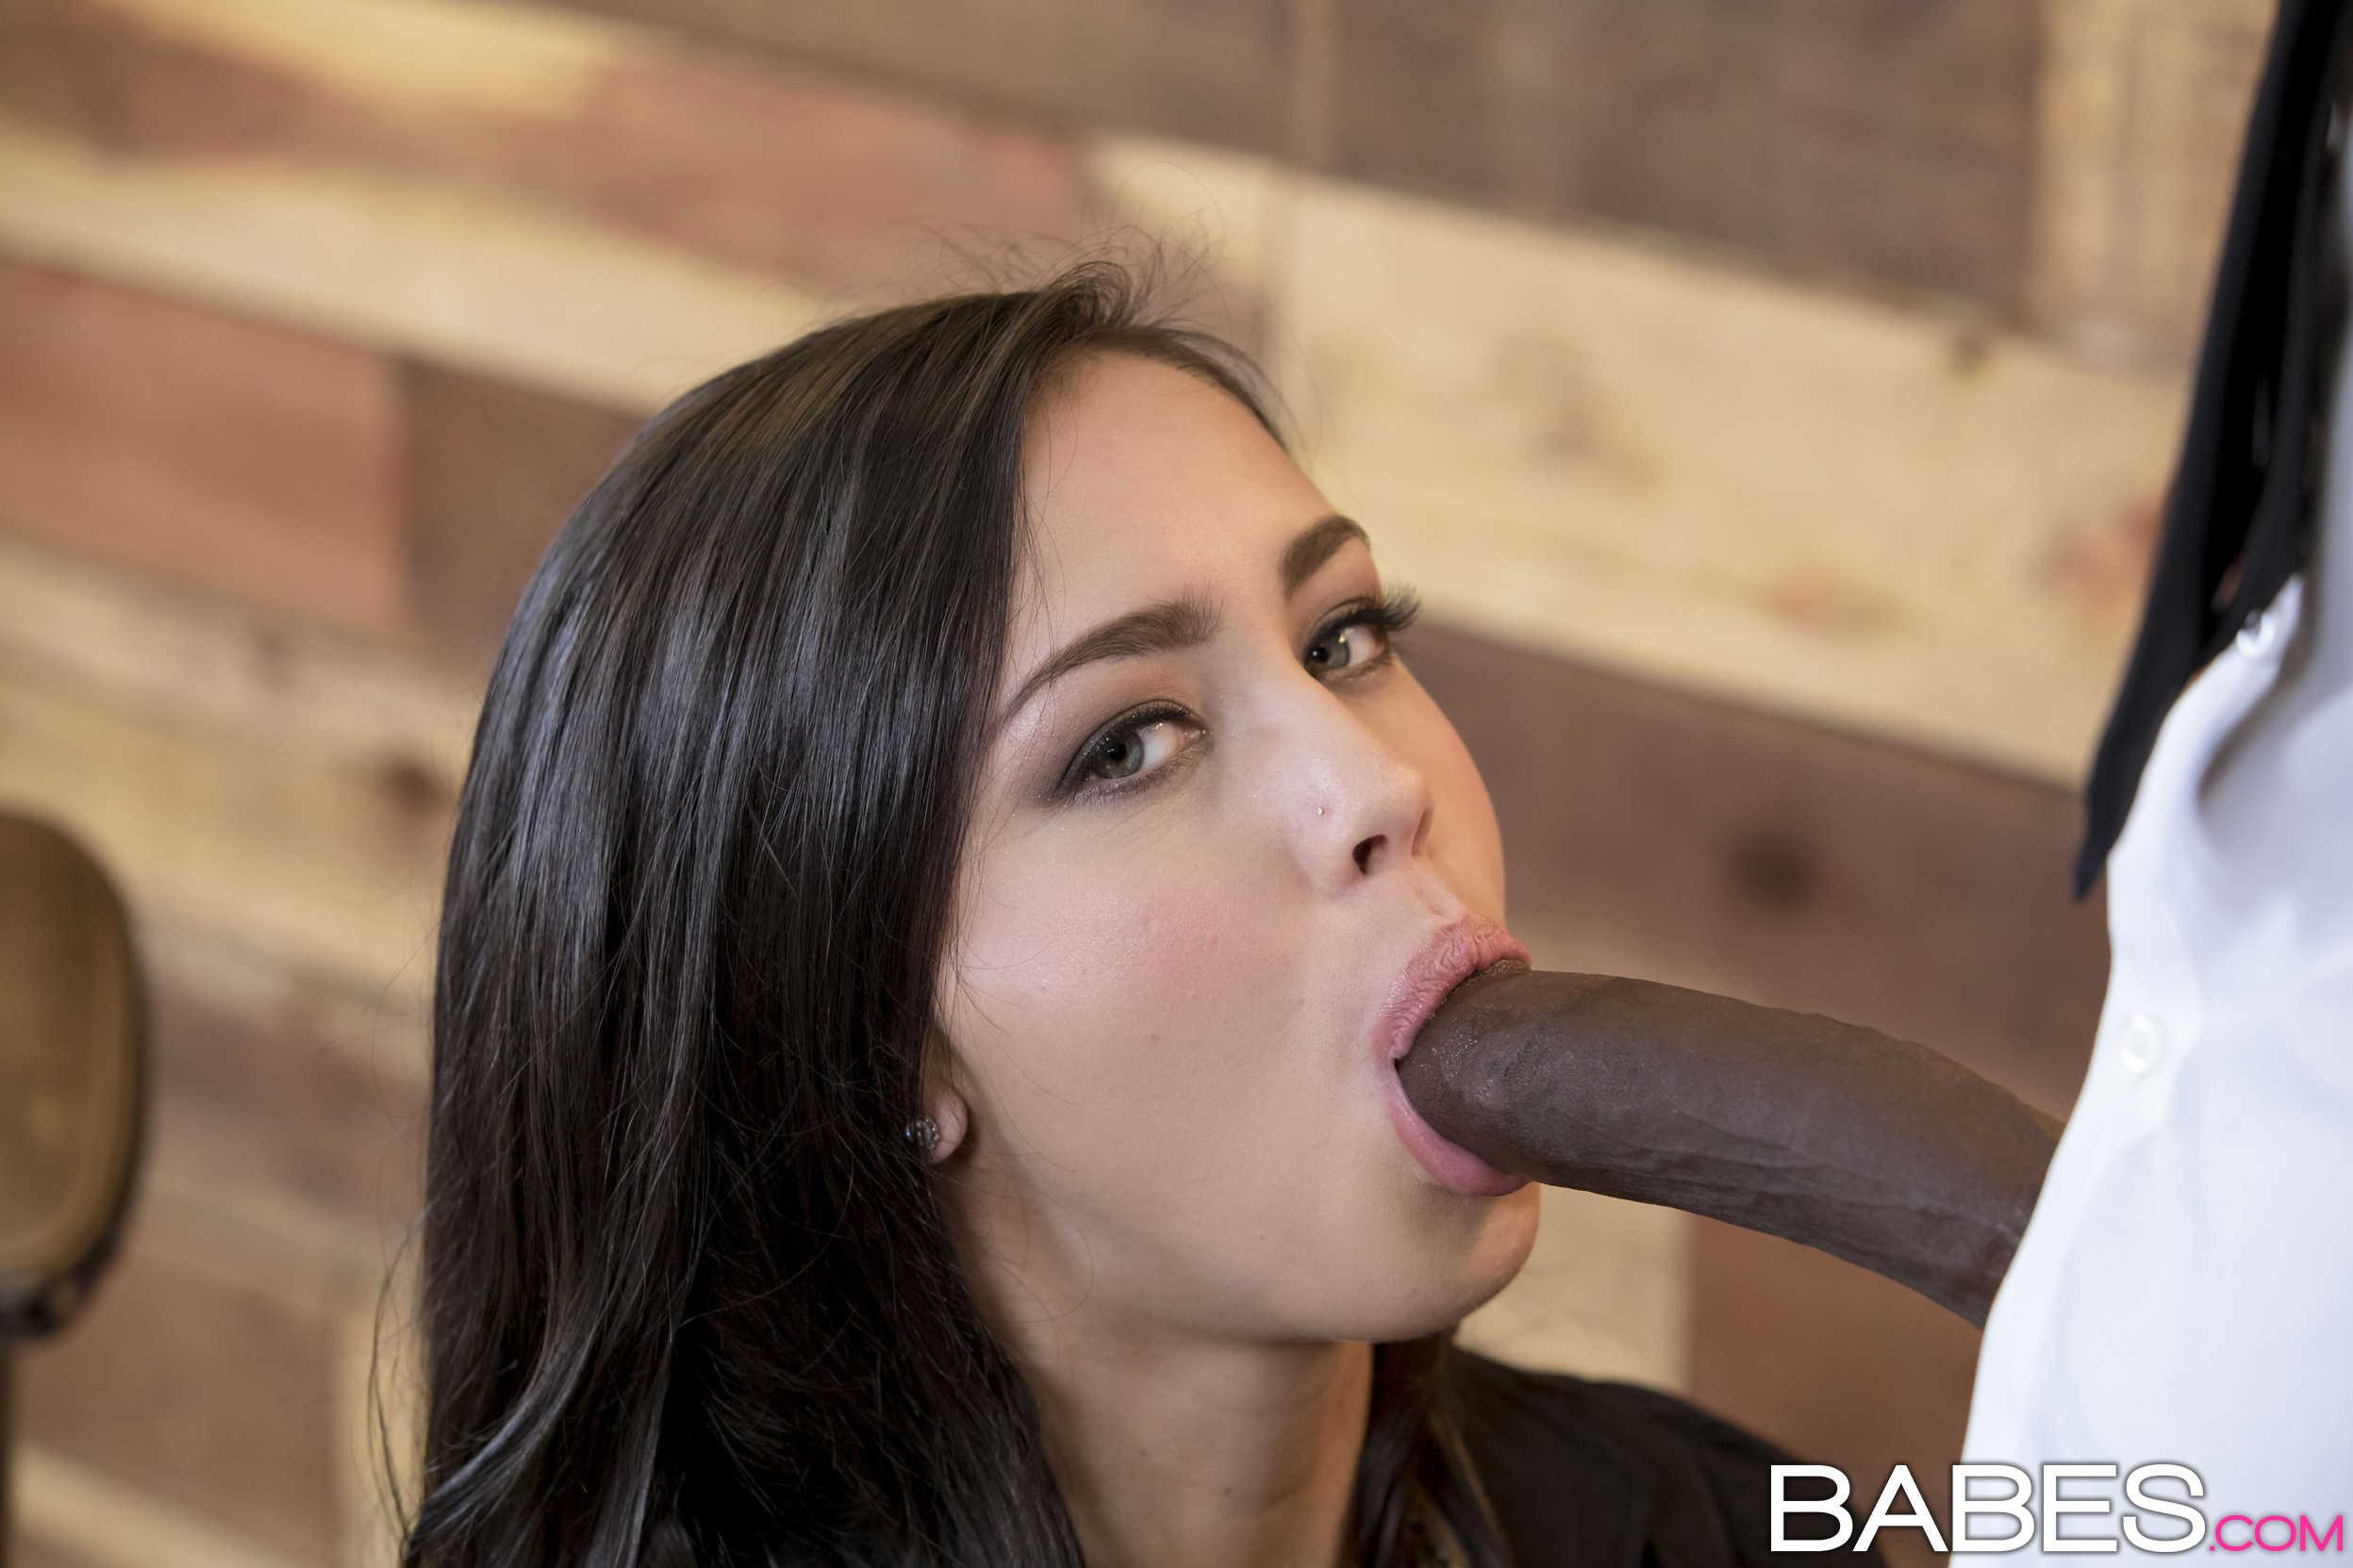 Babes.com presents Alina Lopez in Learning On The Job ...